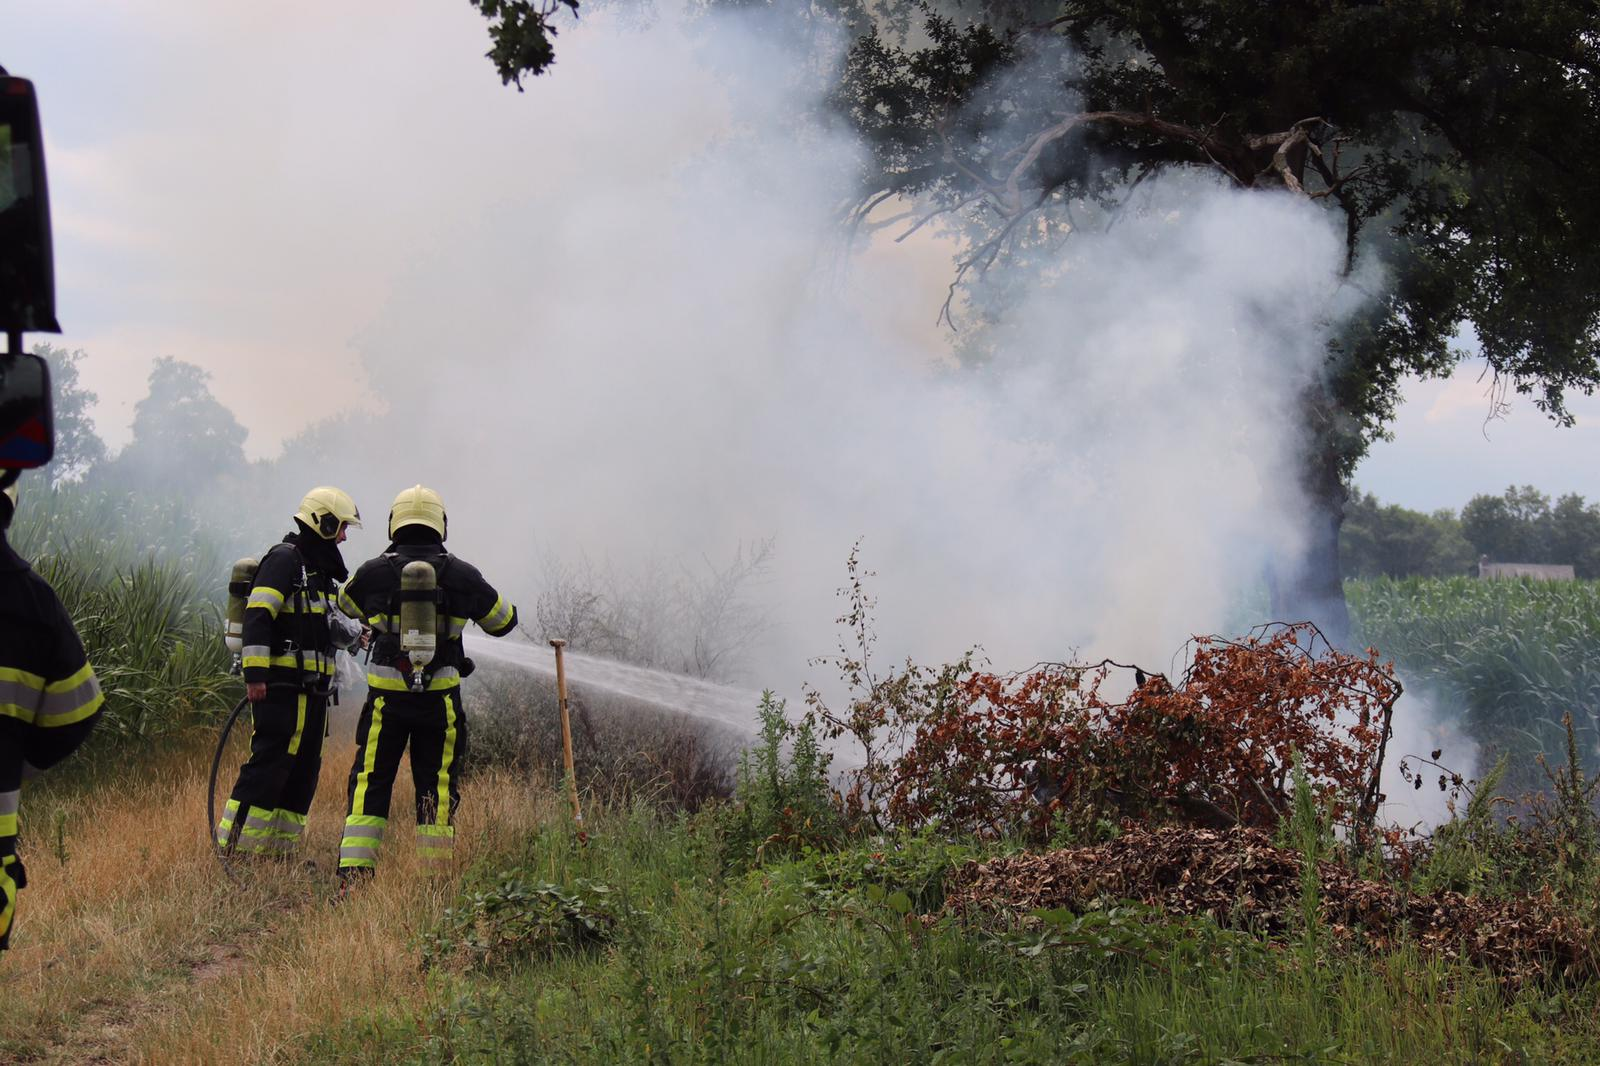 20-07-2019-Bermbrand-Sint-Oedenrode-04